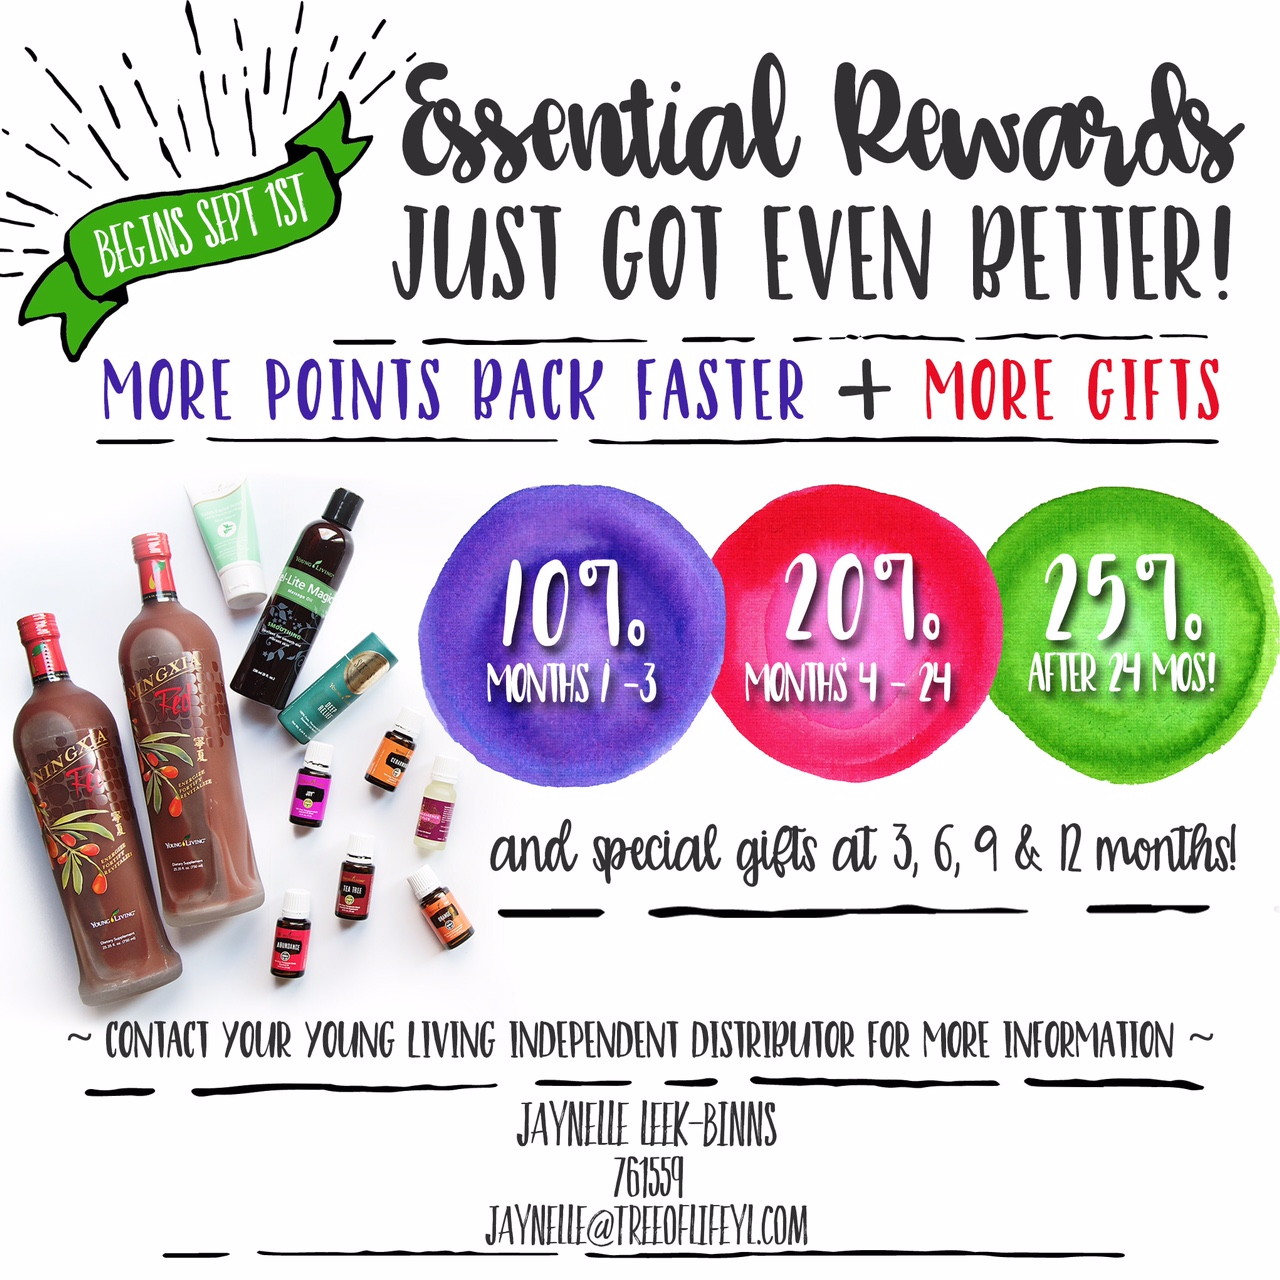 Woo hoo! Young Living's Essential Rewards program will be even more generous starting September 1st.